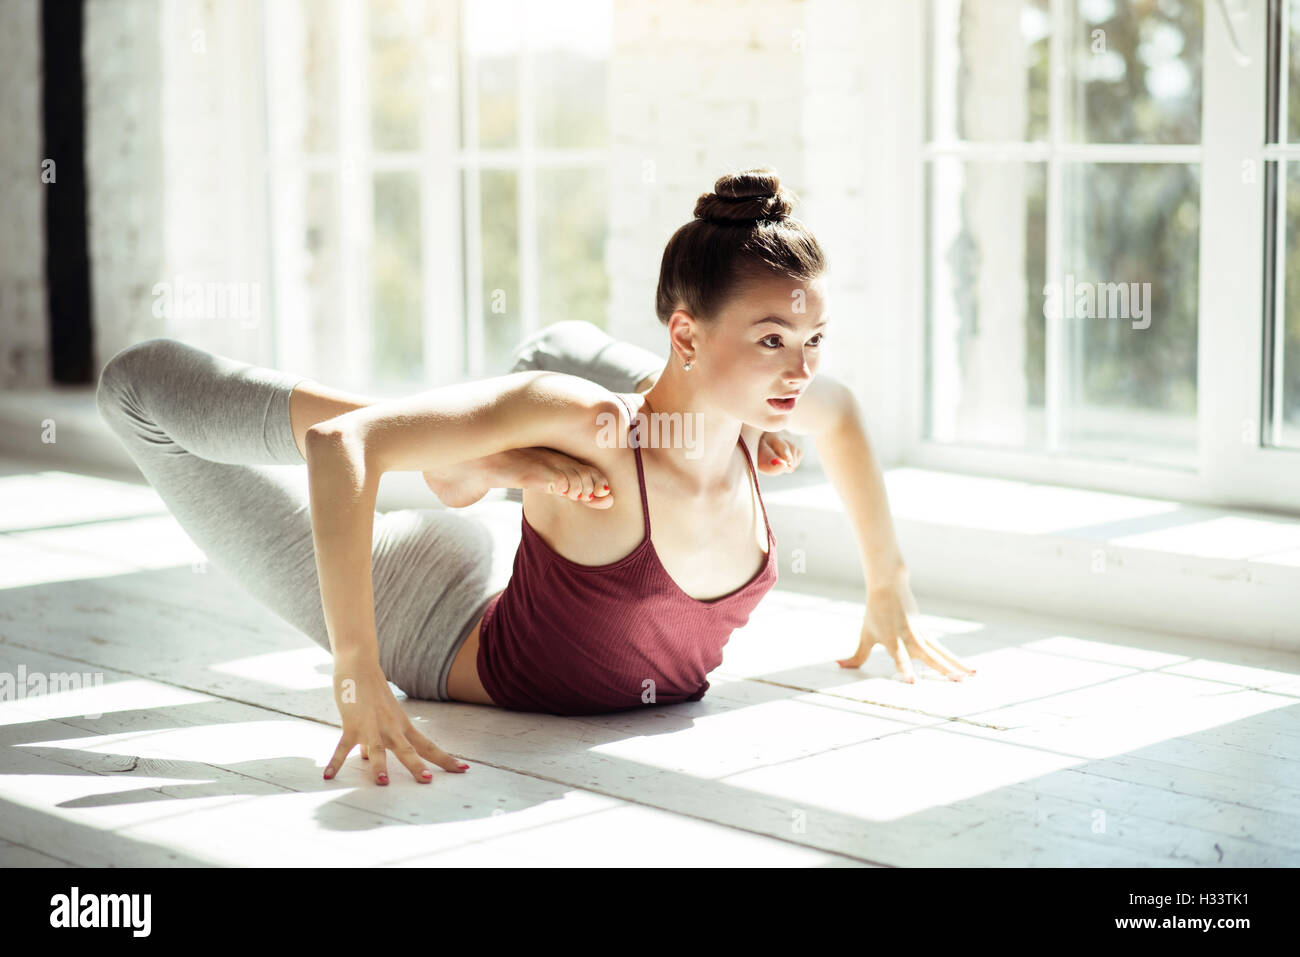 Professional young dancer having a workout - Stock Image